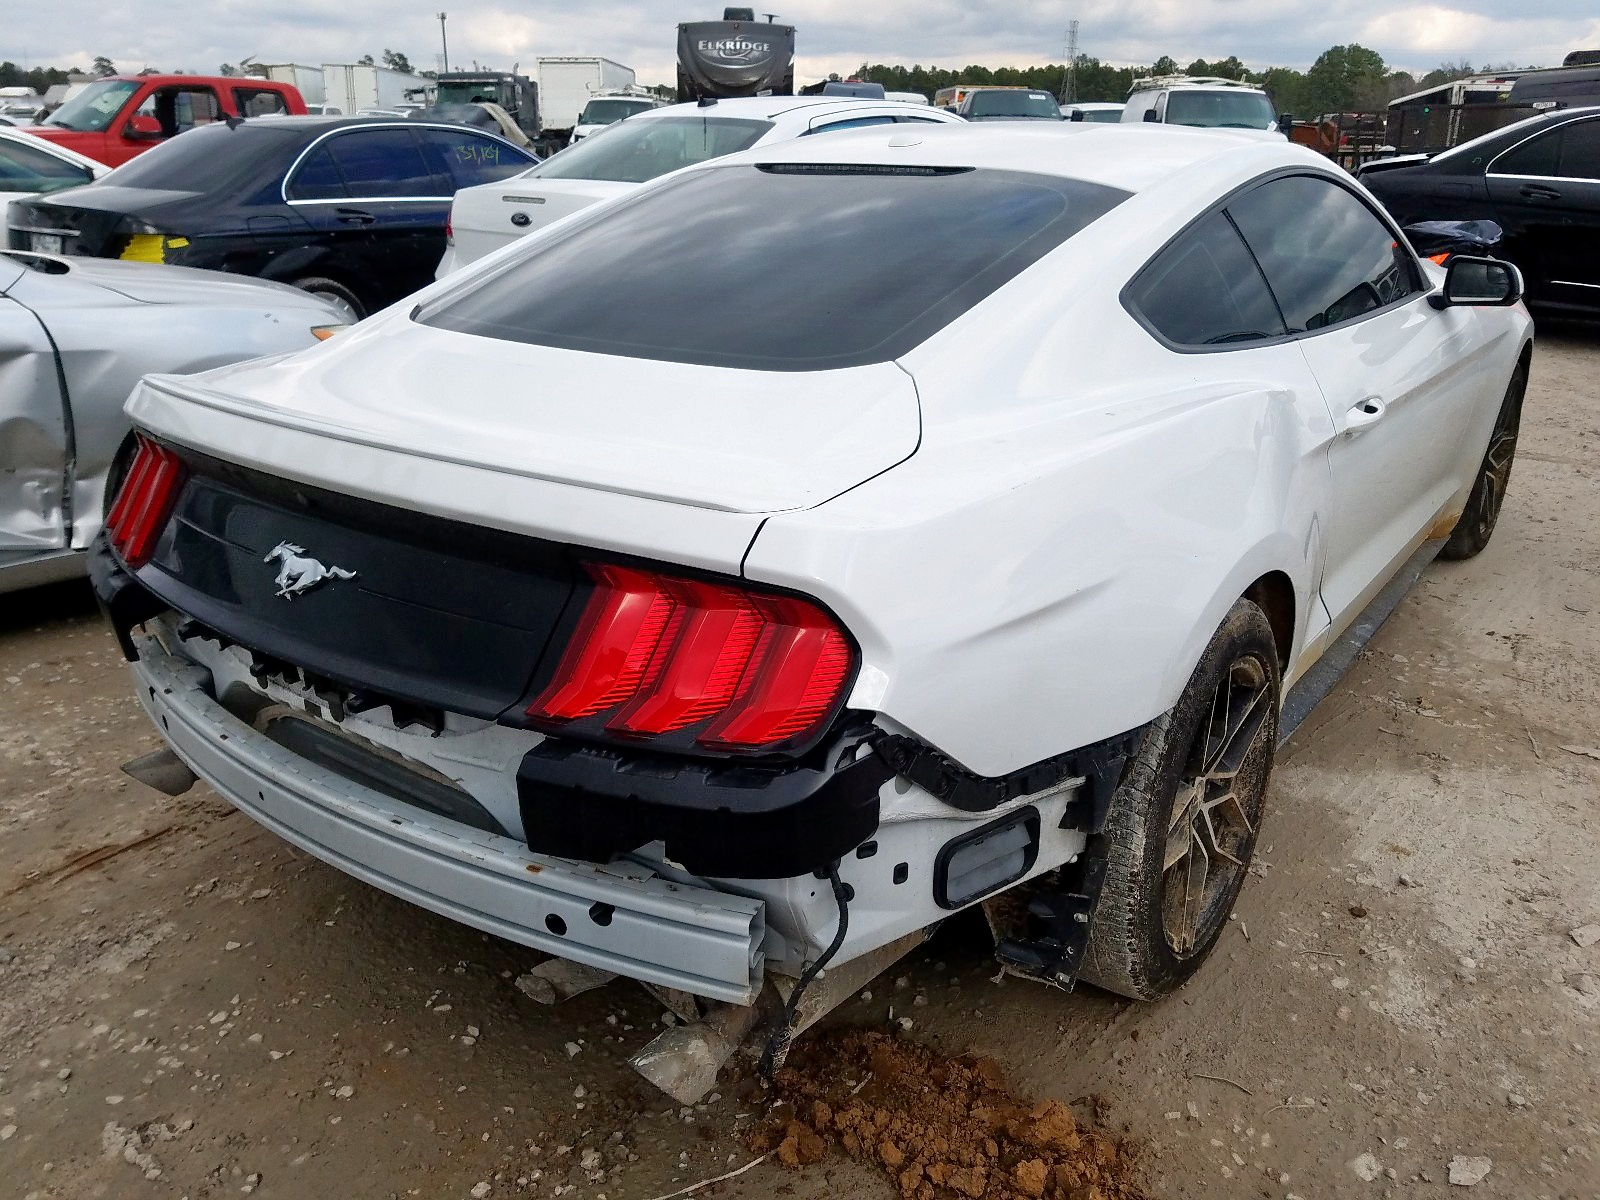 1FA6P8TH4J5115720 - 2018 Ford Mustang 2.3L rear view